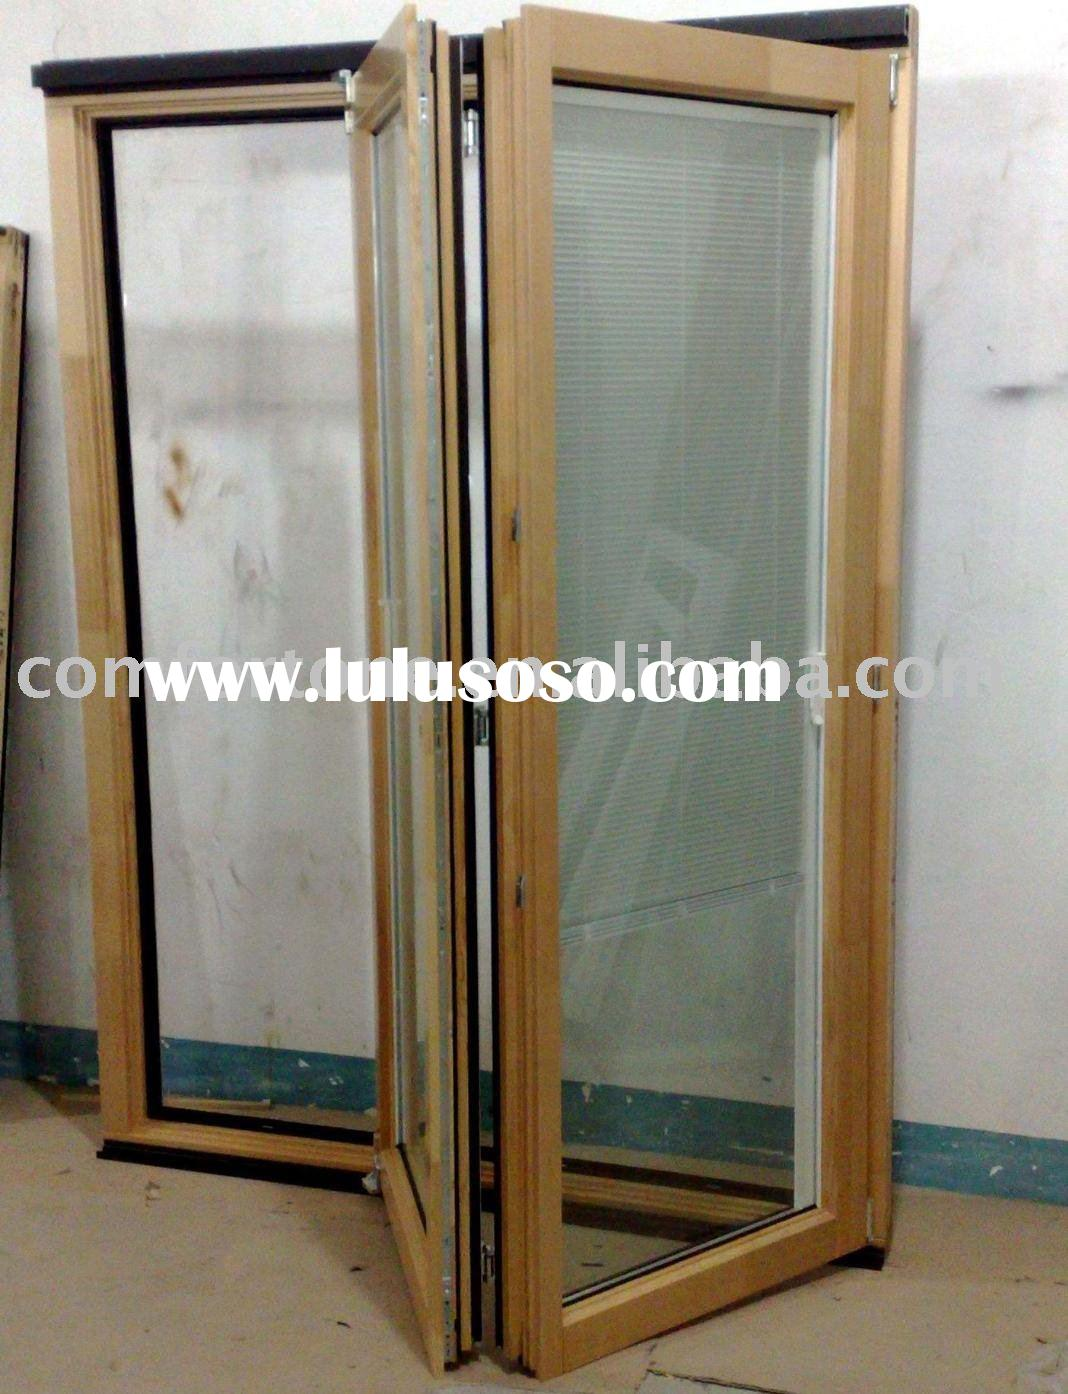 Soundproof wood folding doors accordion